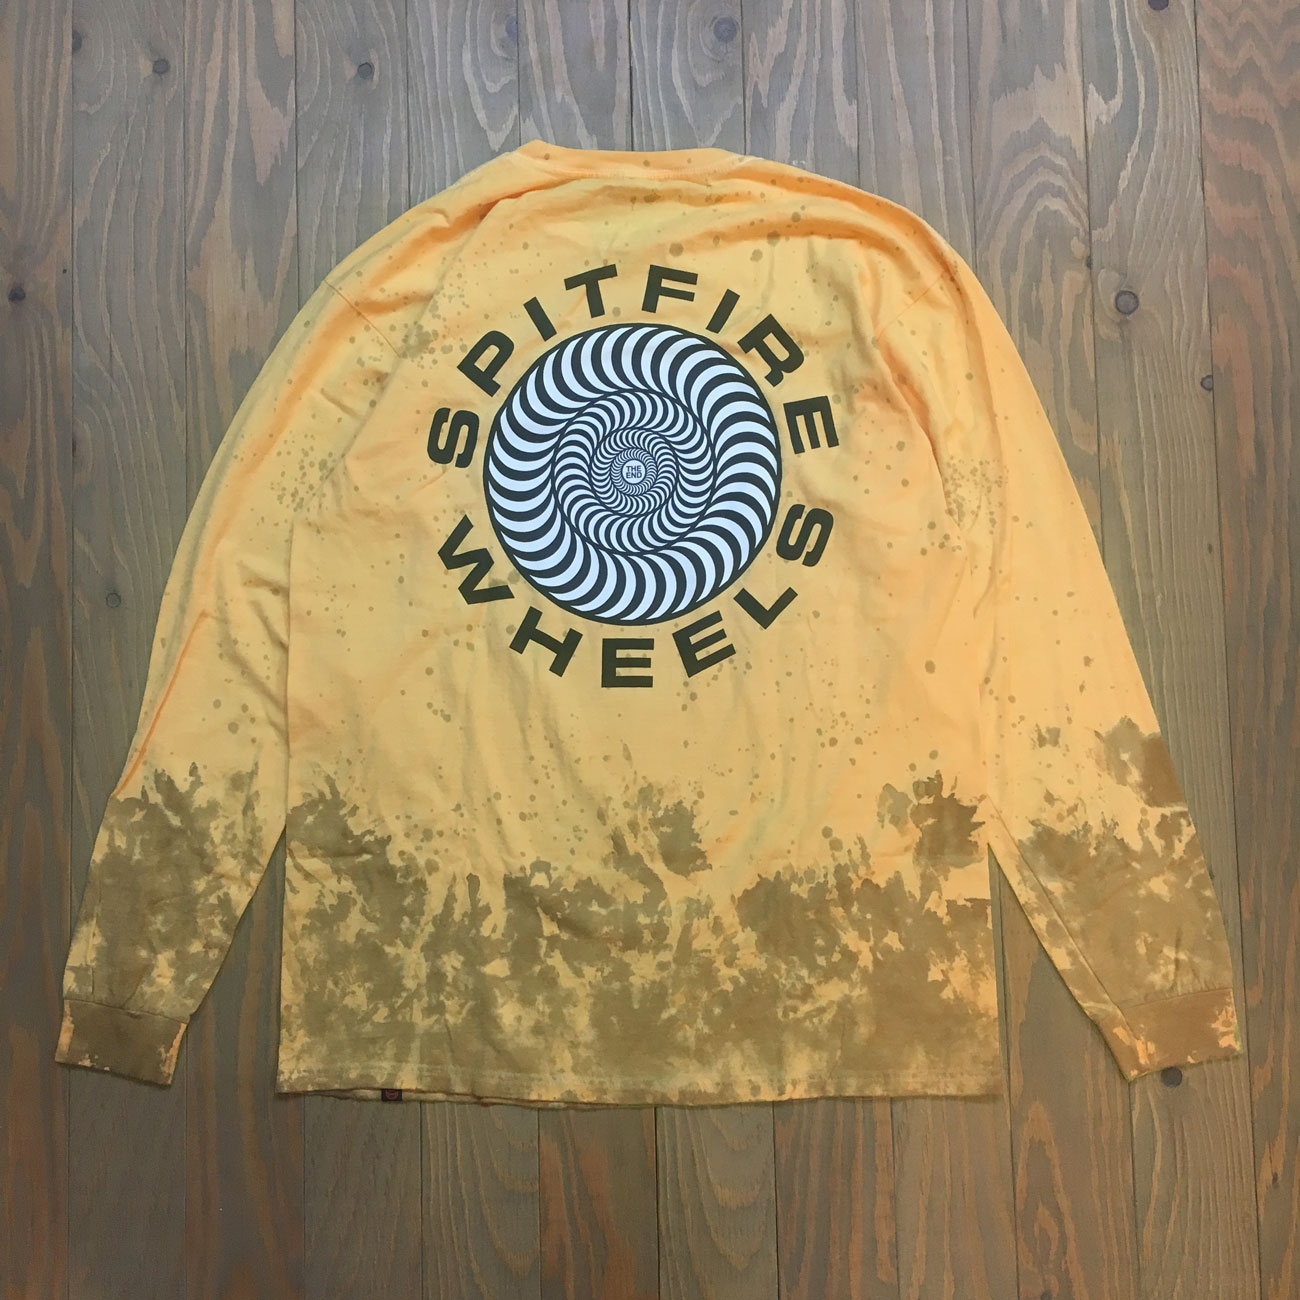 SPITFIRE CLASSIC 87' SWIRL L/S TEE YELLOW WASH